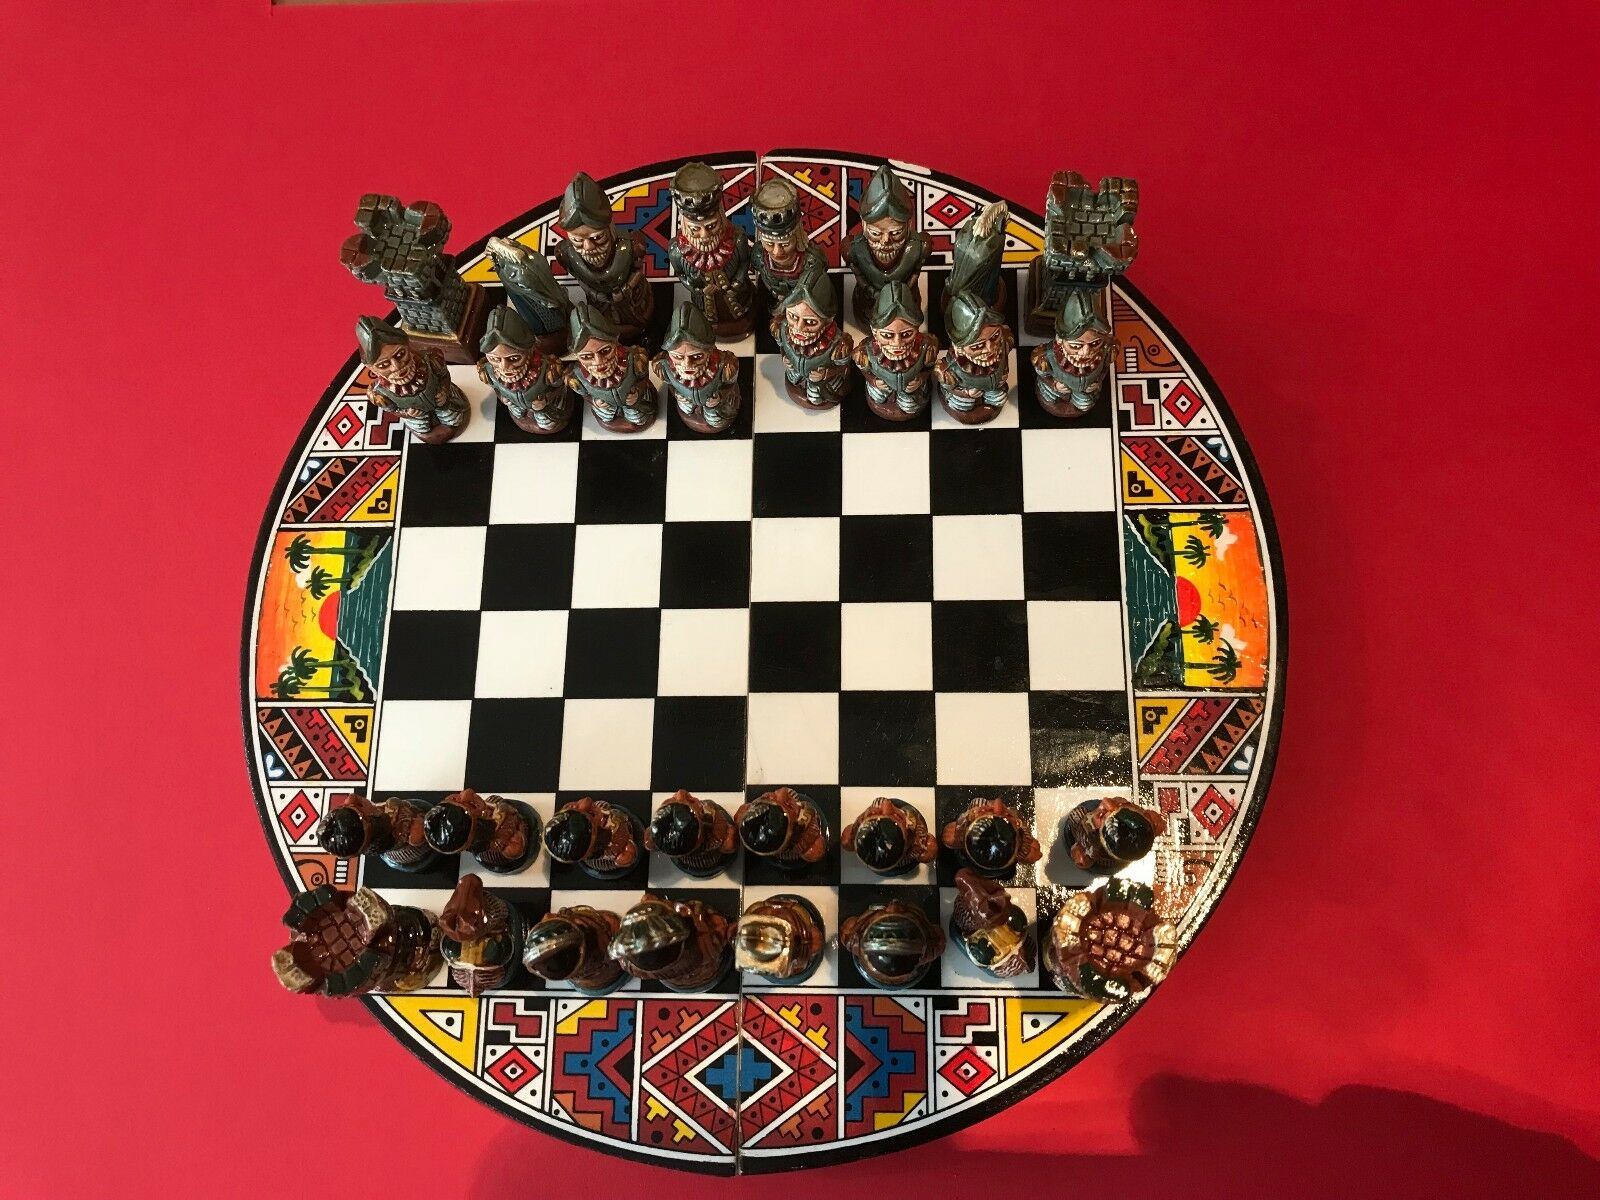 Incas and Conquistadors Chess Pieces and Board, Hand Painted